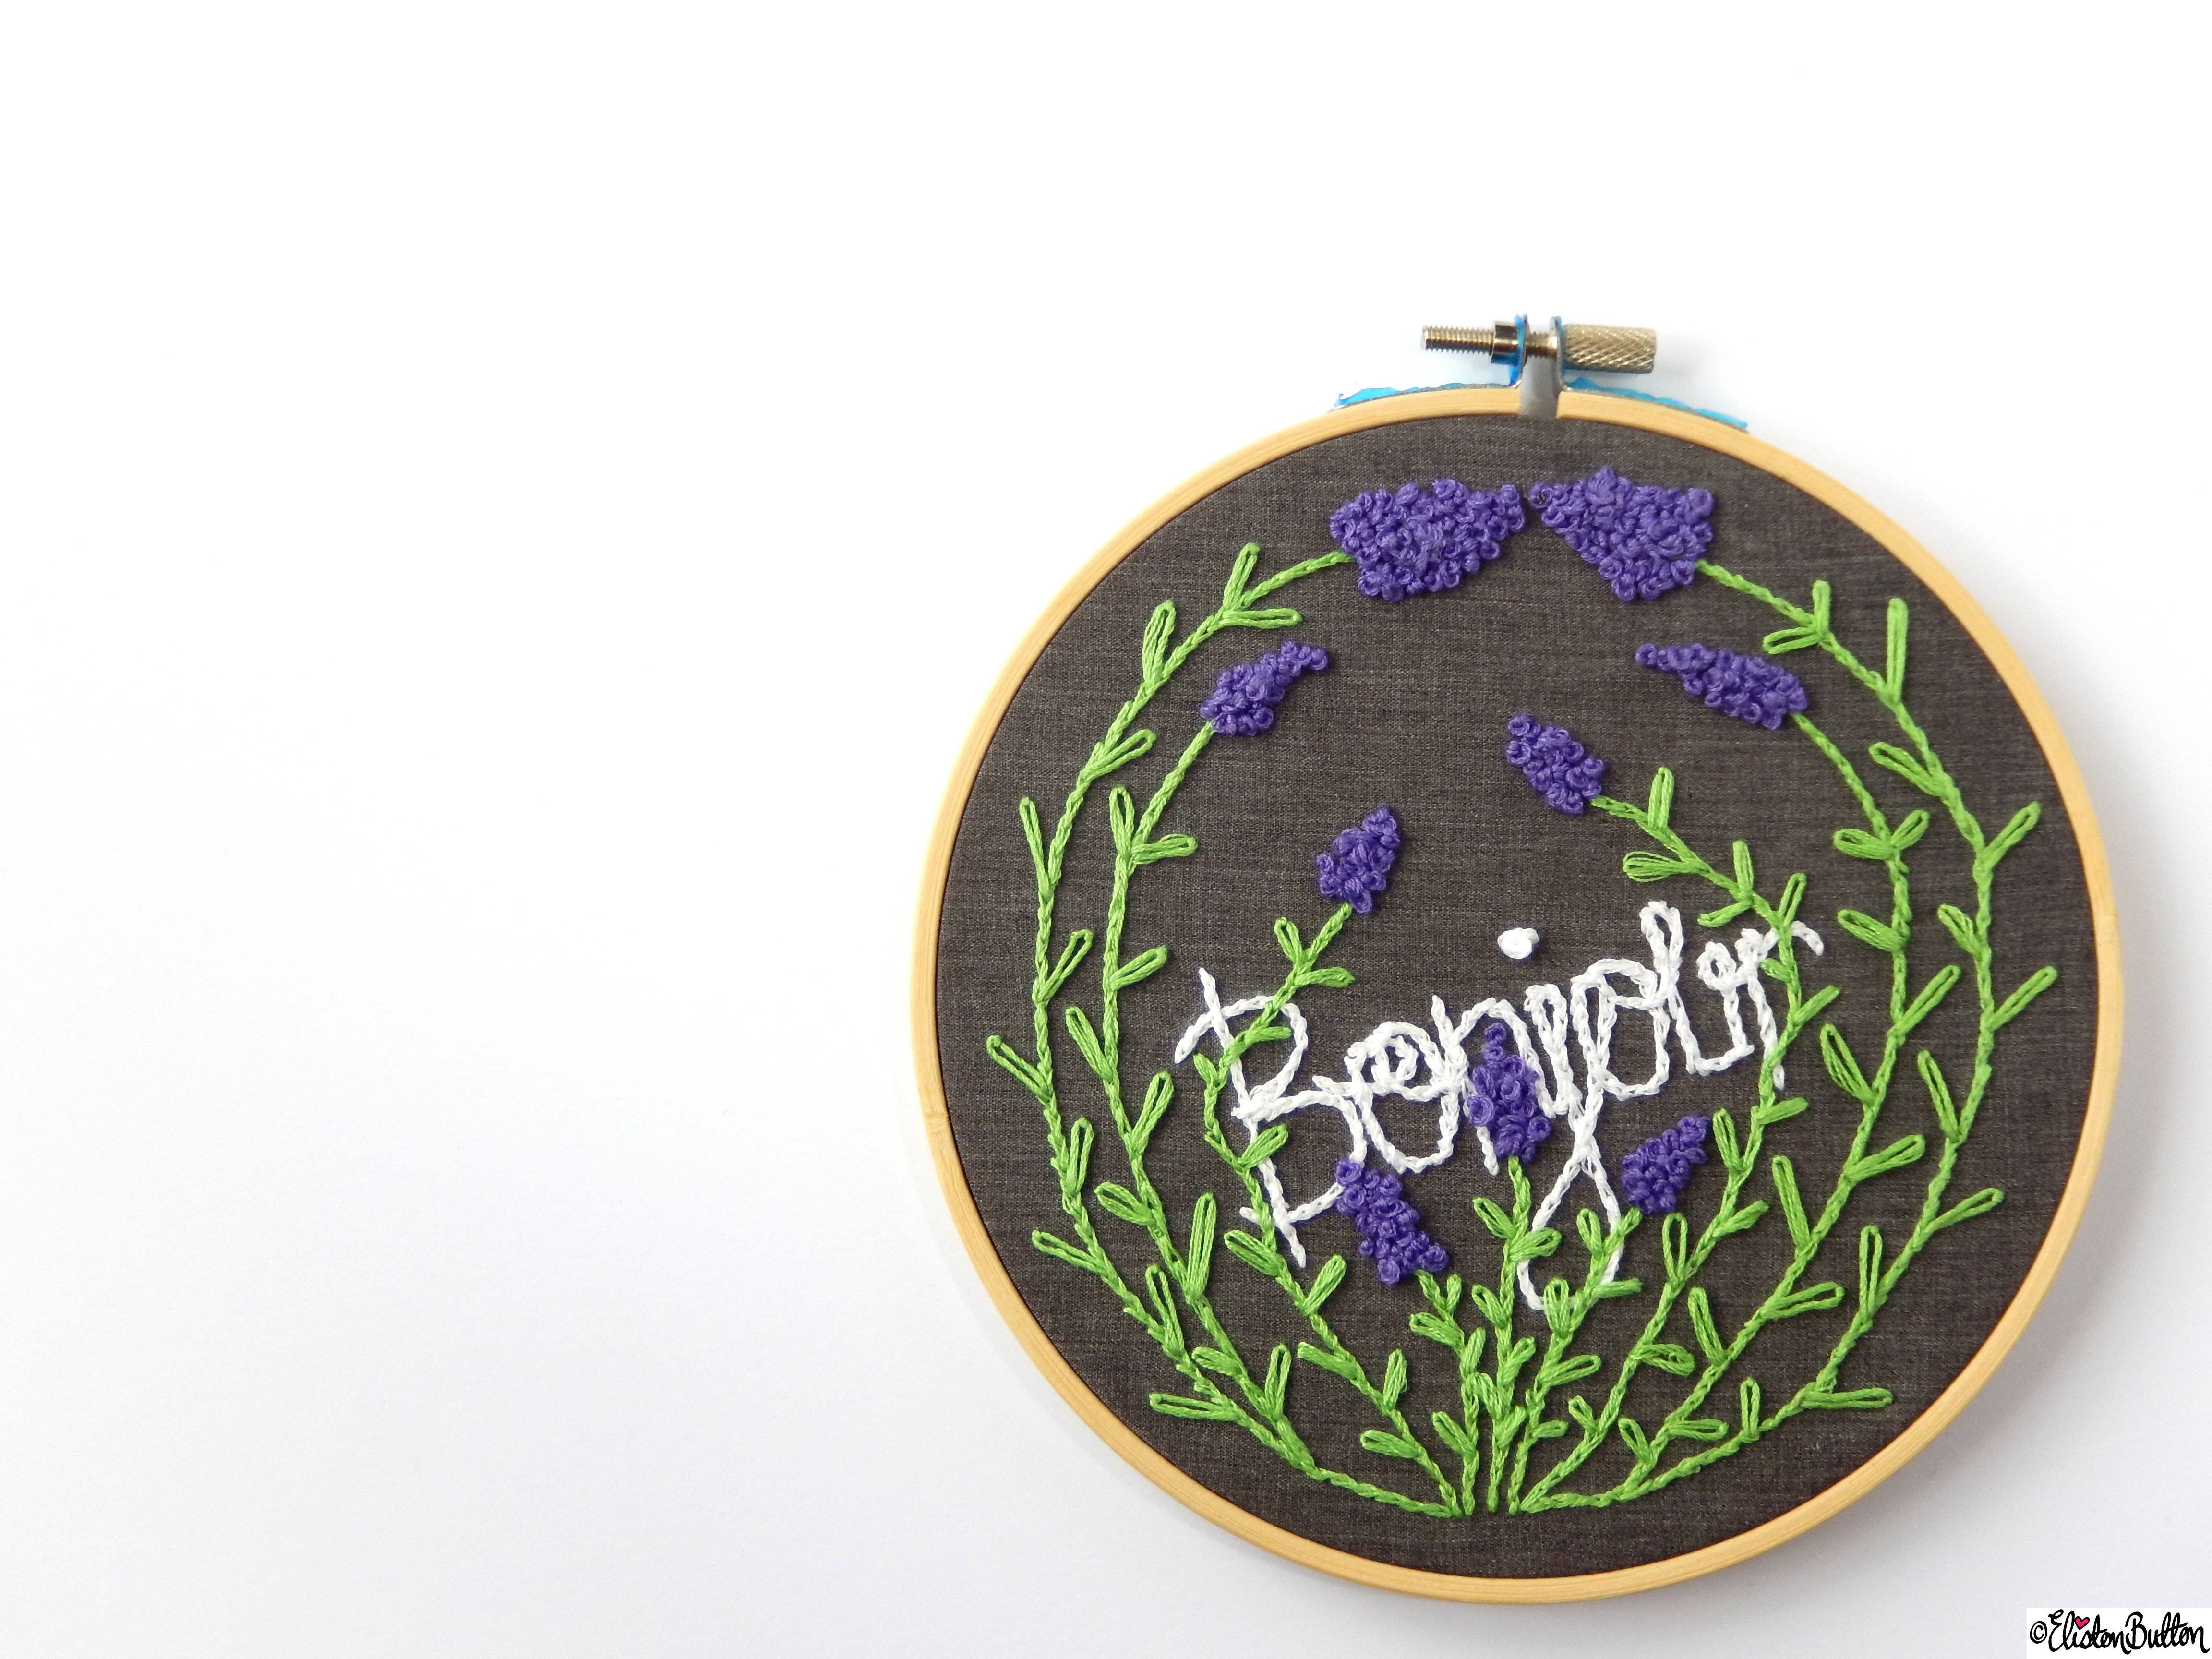 Bonjour French Inspired Embroidery Hoop Wall Art  (4) - Create 28 - No.28 - Embroidery Hoop Wall Art at www.elistonbutton.com - Eliston Button - That Crafty Kid – Art, Design, Craft & Adventure.